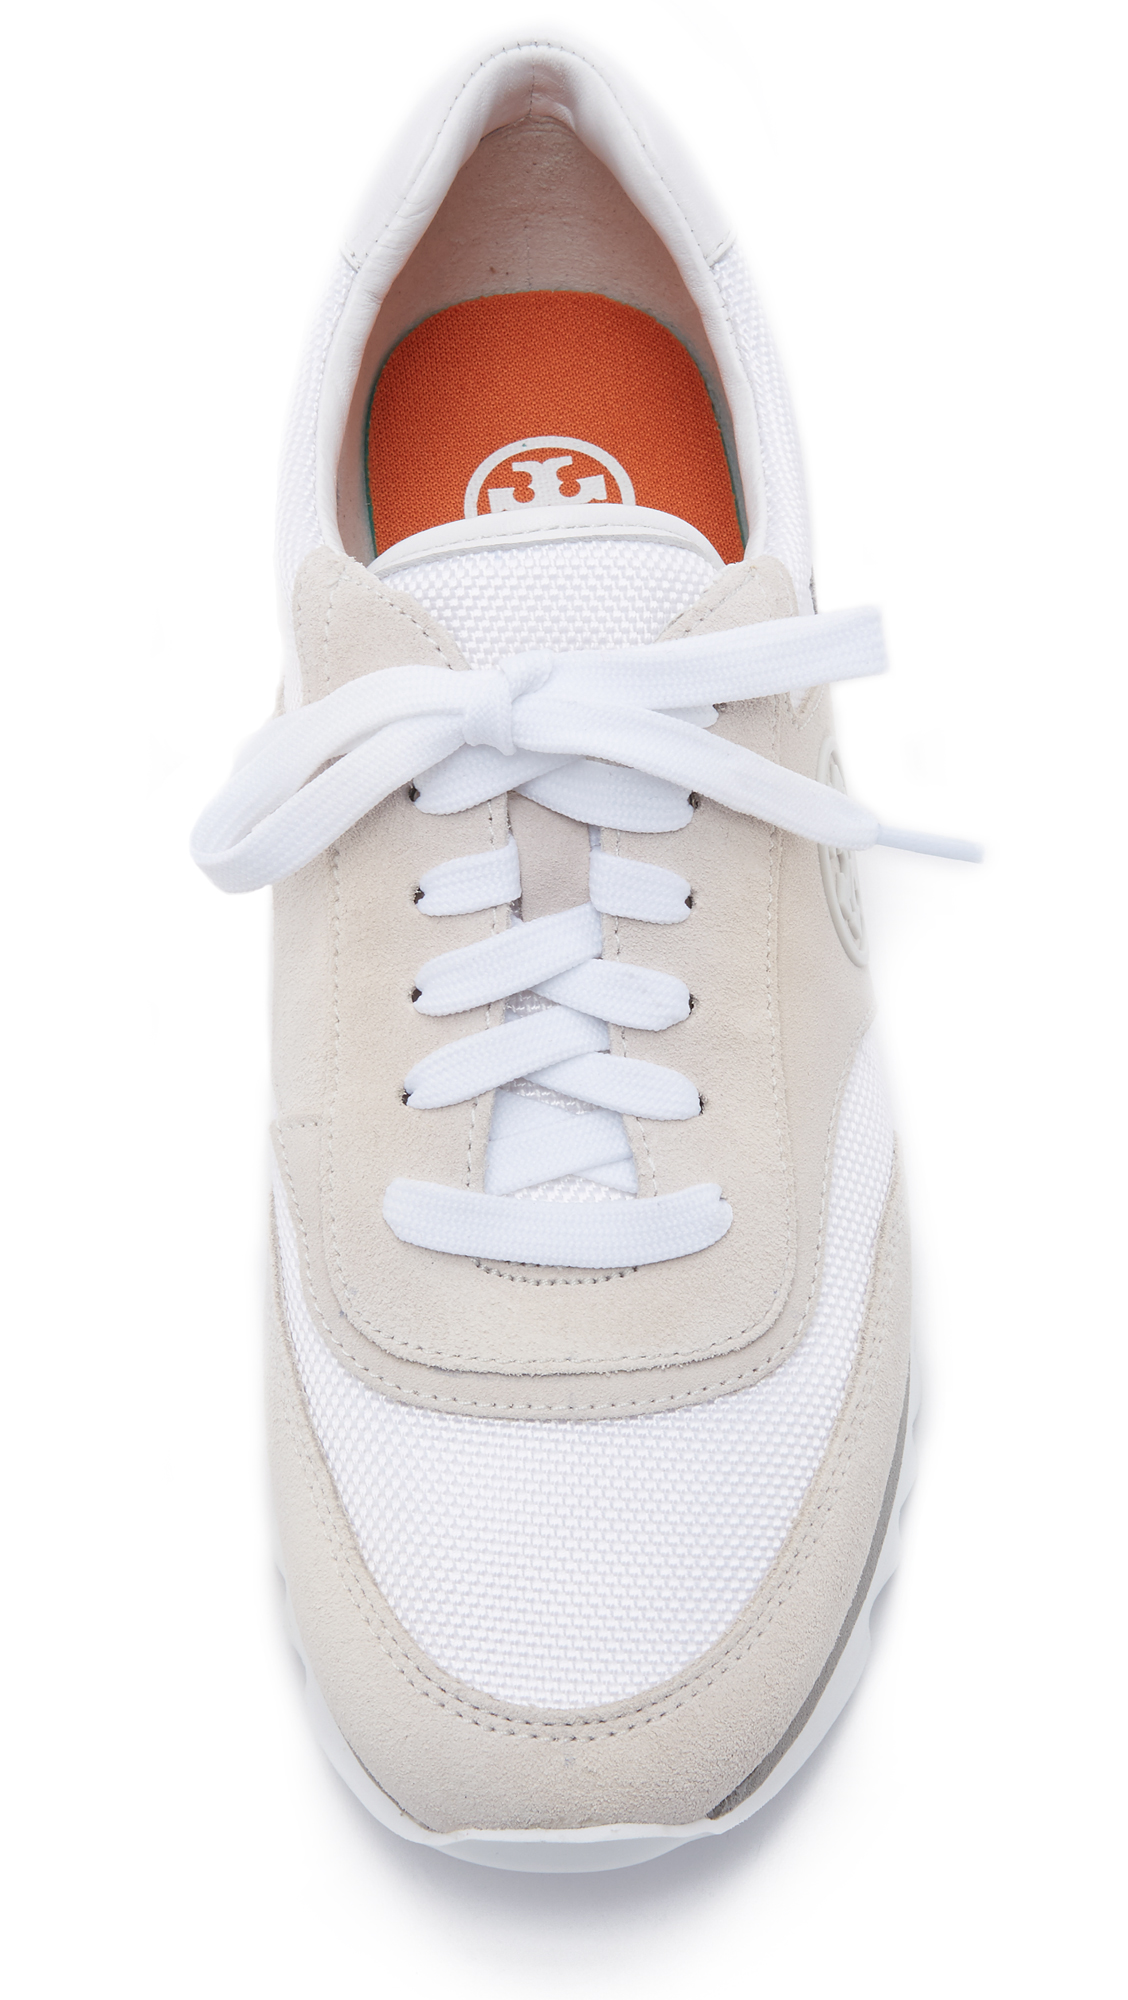 df80c826de64 Tory Burch Sawtooth Logo Trainer Sneakers